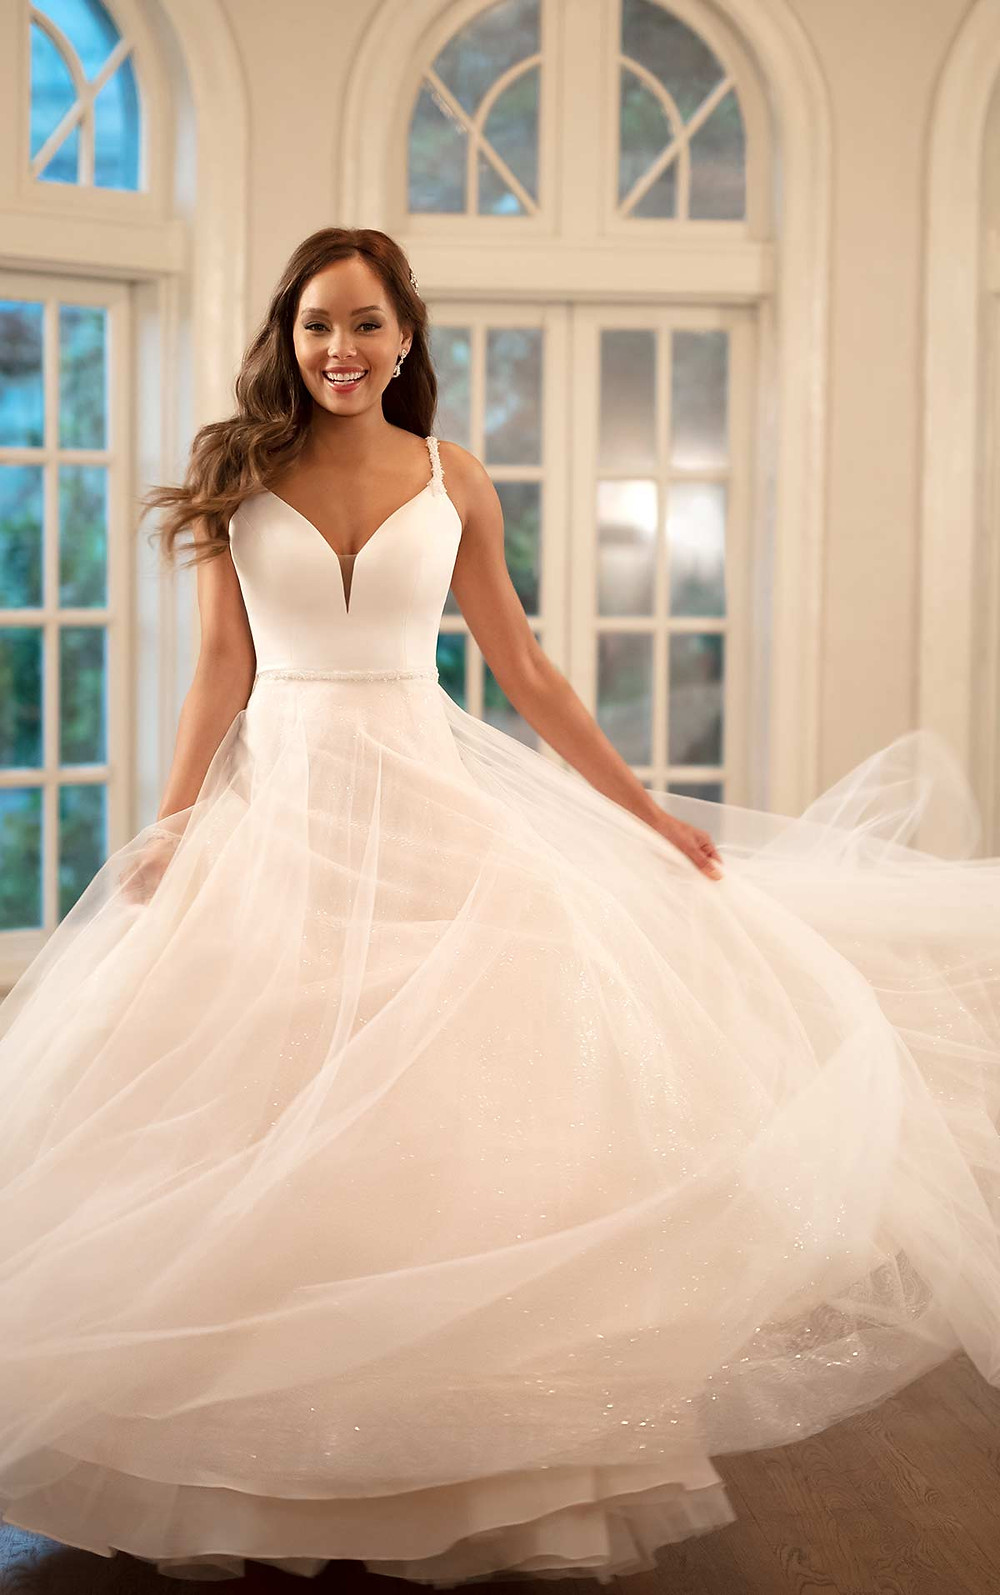 A Stella York 2020 blush crepe and tulle ball gown wedding dress with straps